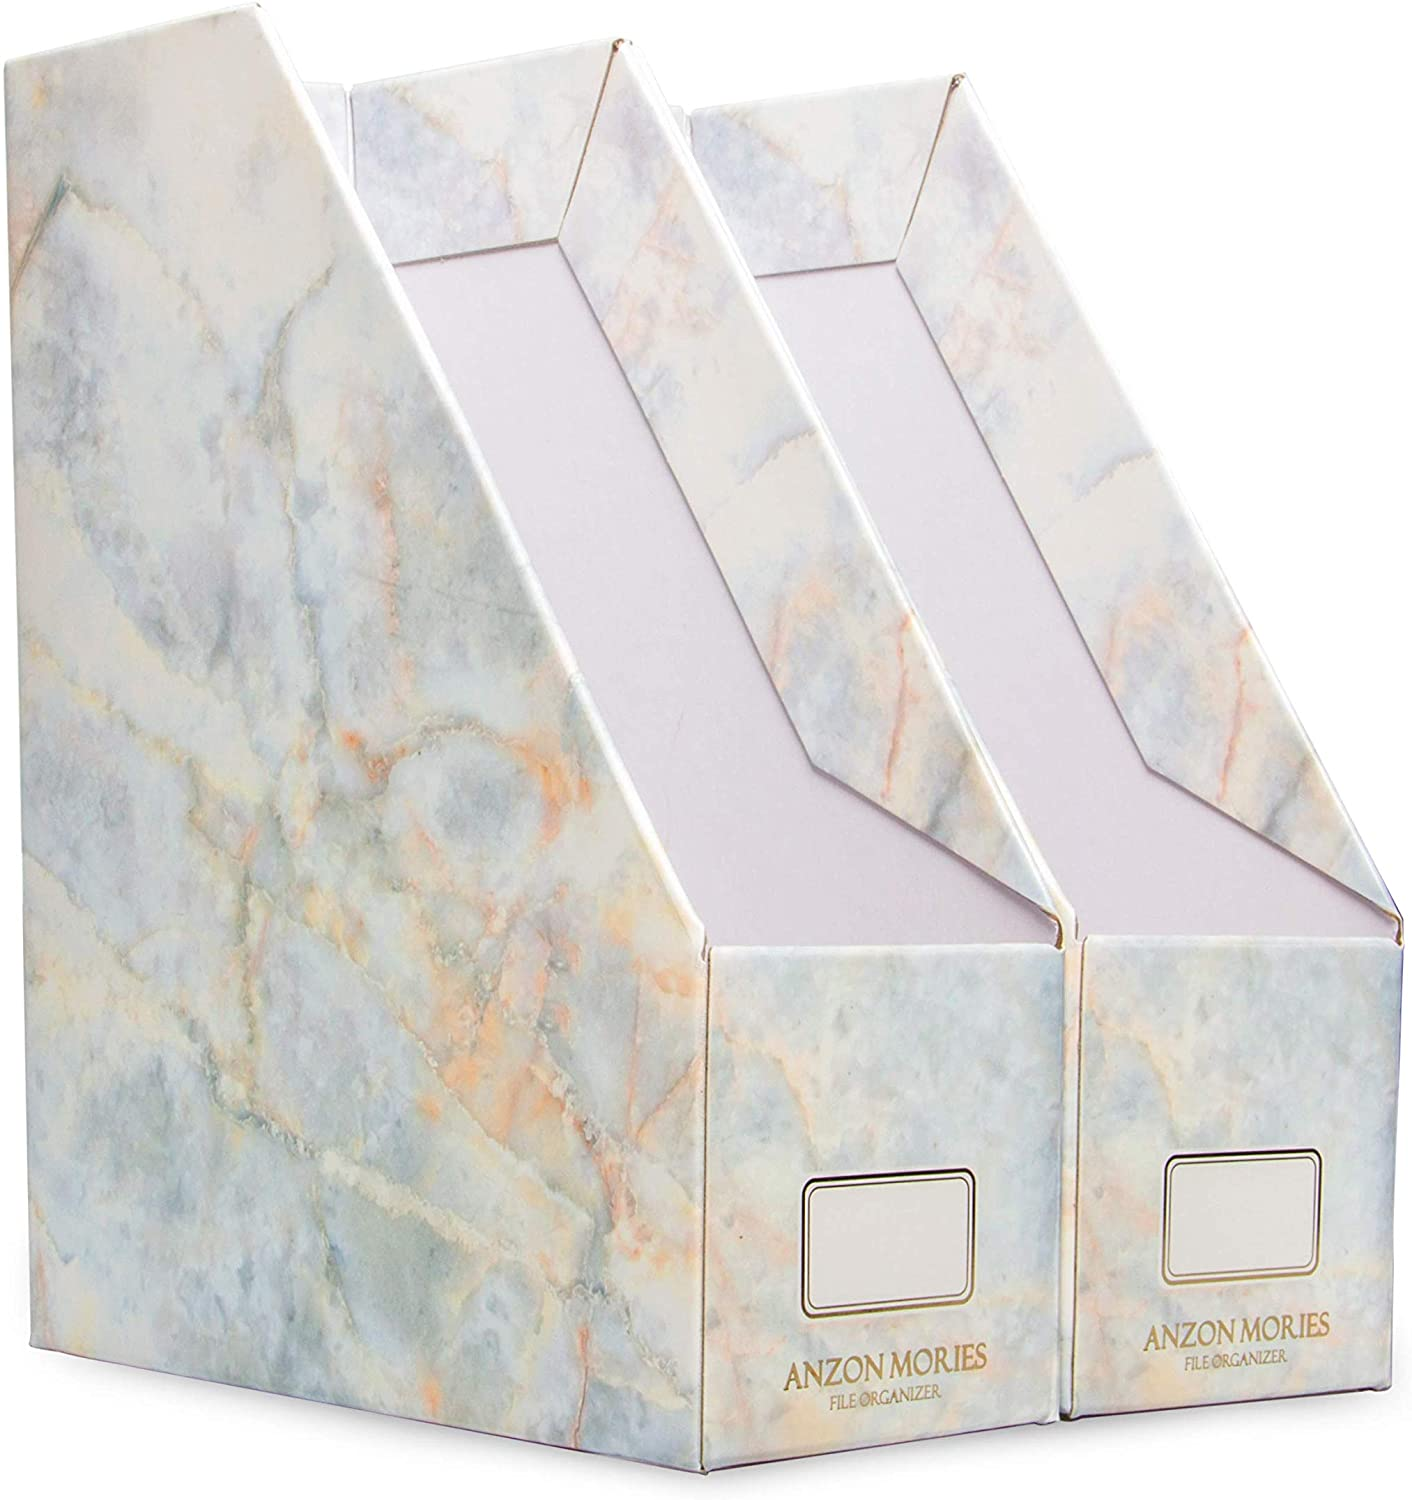 ANZON MORIES Magazine File Holder with Golden Marble Design 2 Pack, Premium Document Storage Box, Book Bin, Desk File Rack, Perfect for A4 Size Document, Office Folder, Newspaper Tray